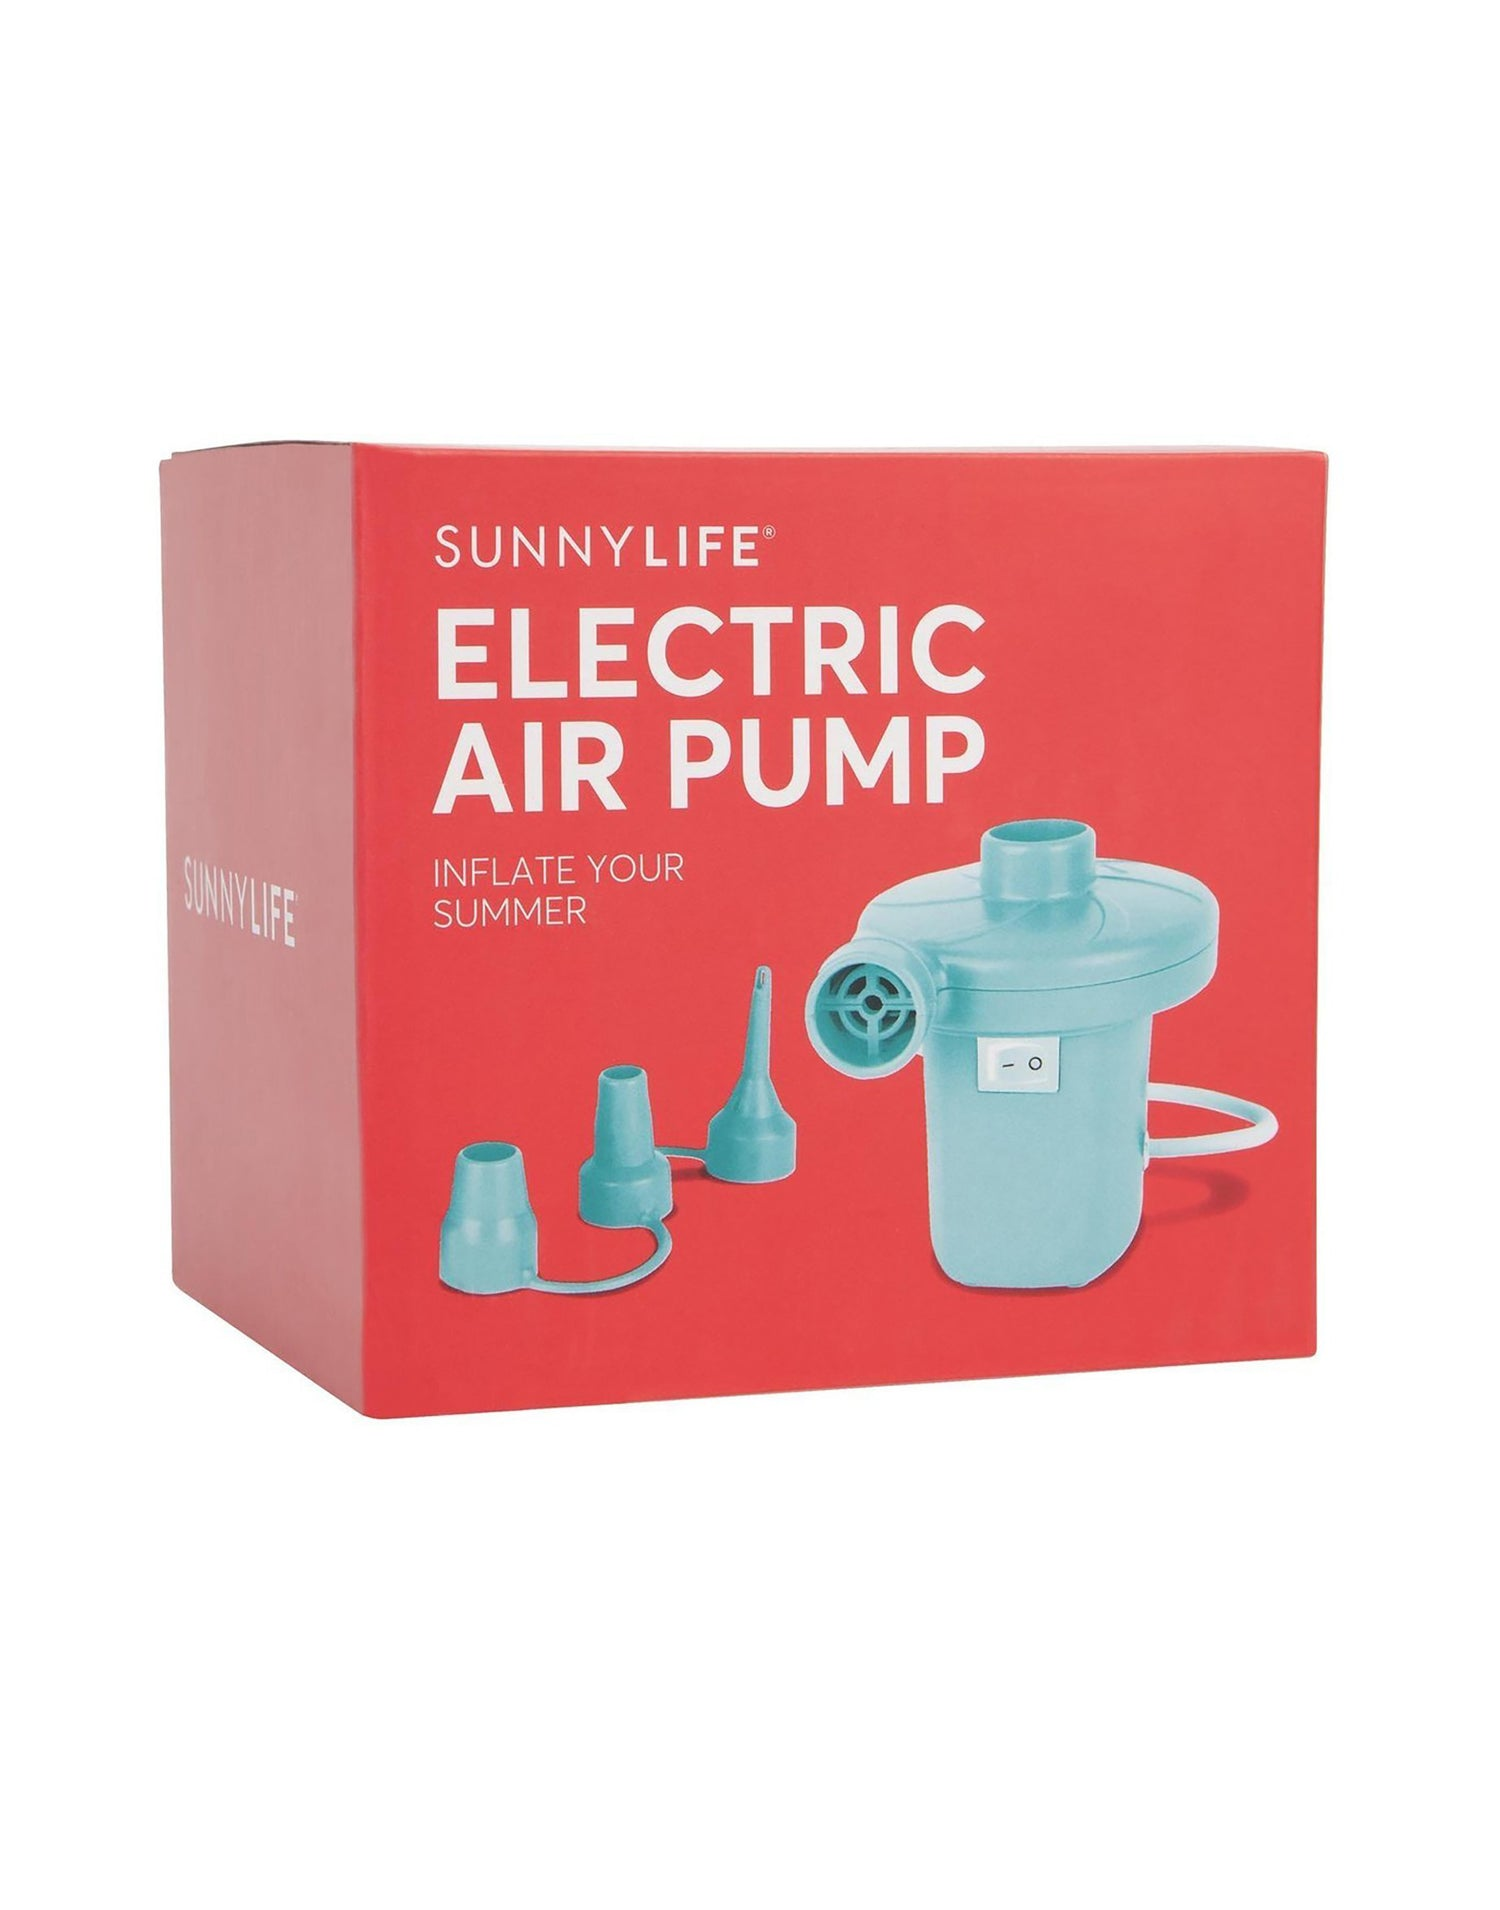 Electric Air Pump Front View with Box